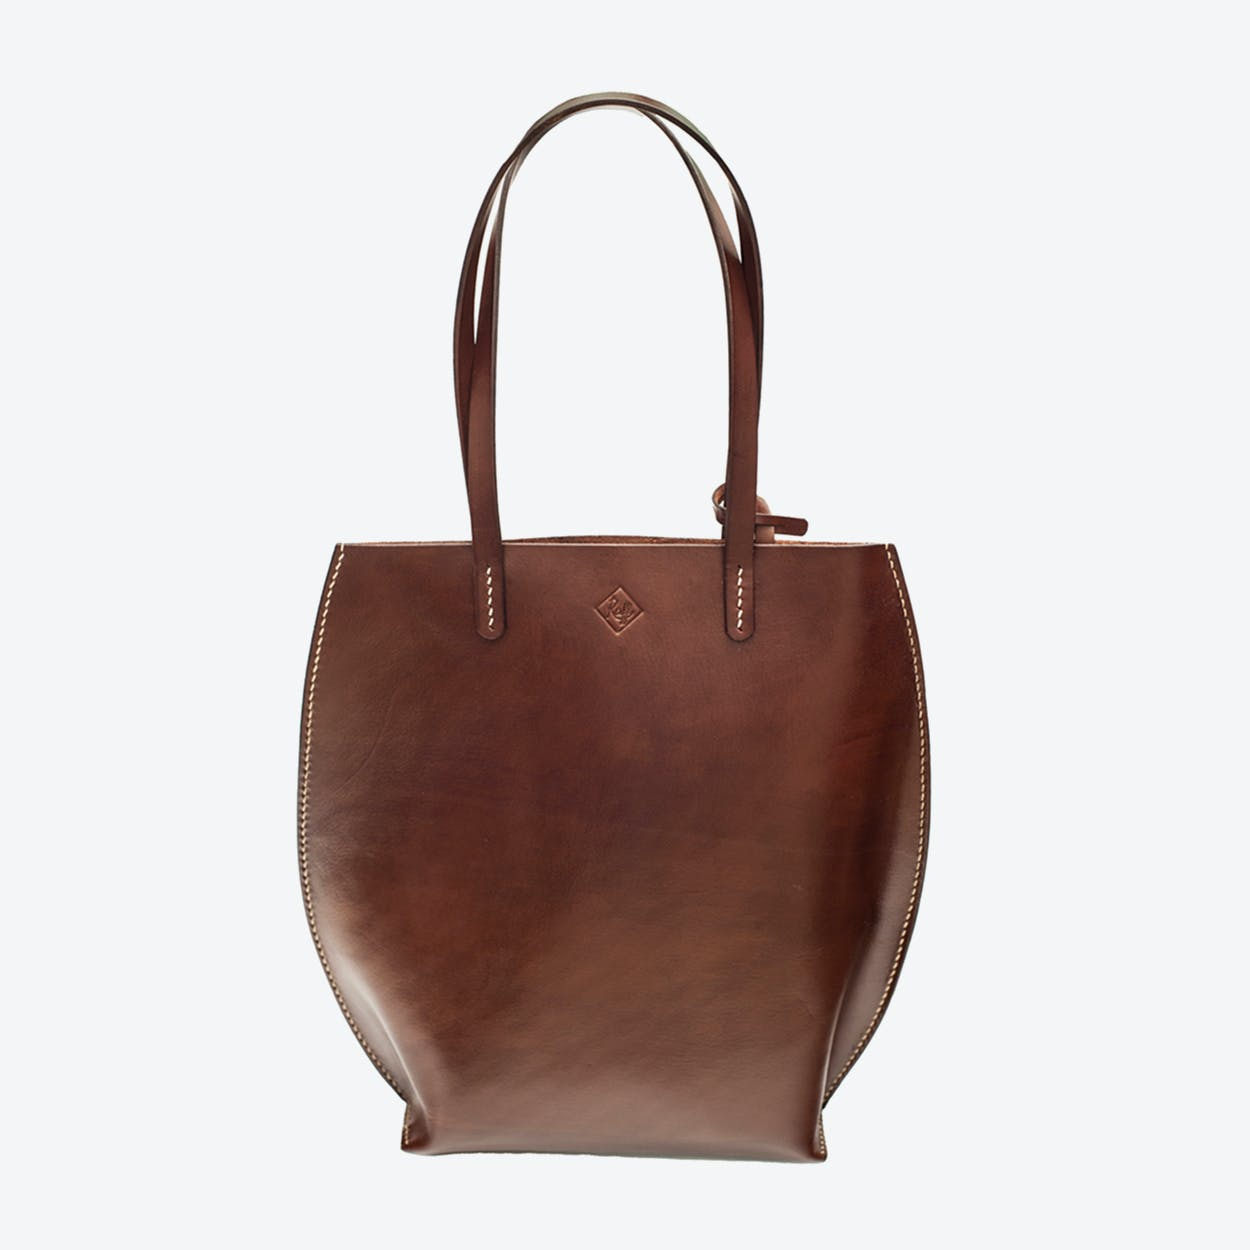 Maus Tote Bag in Brown